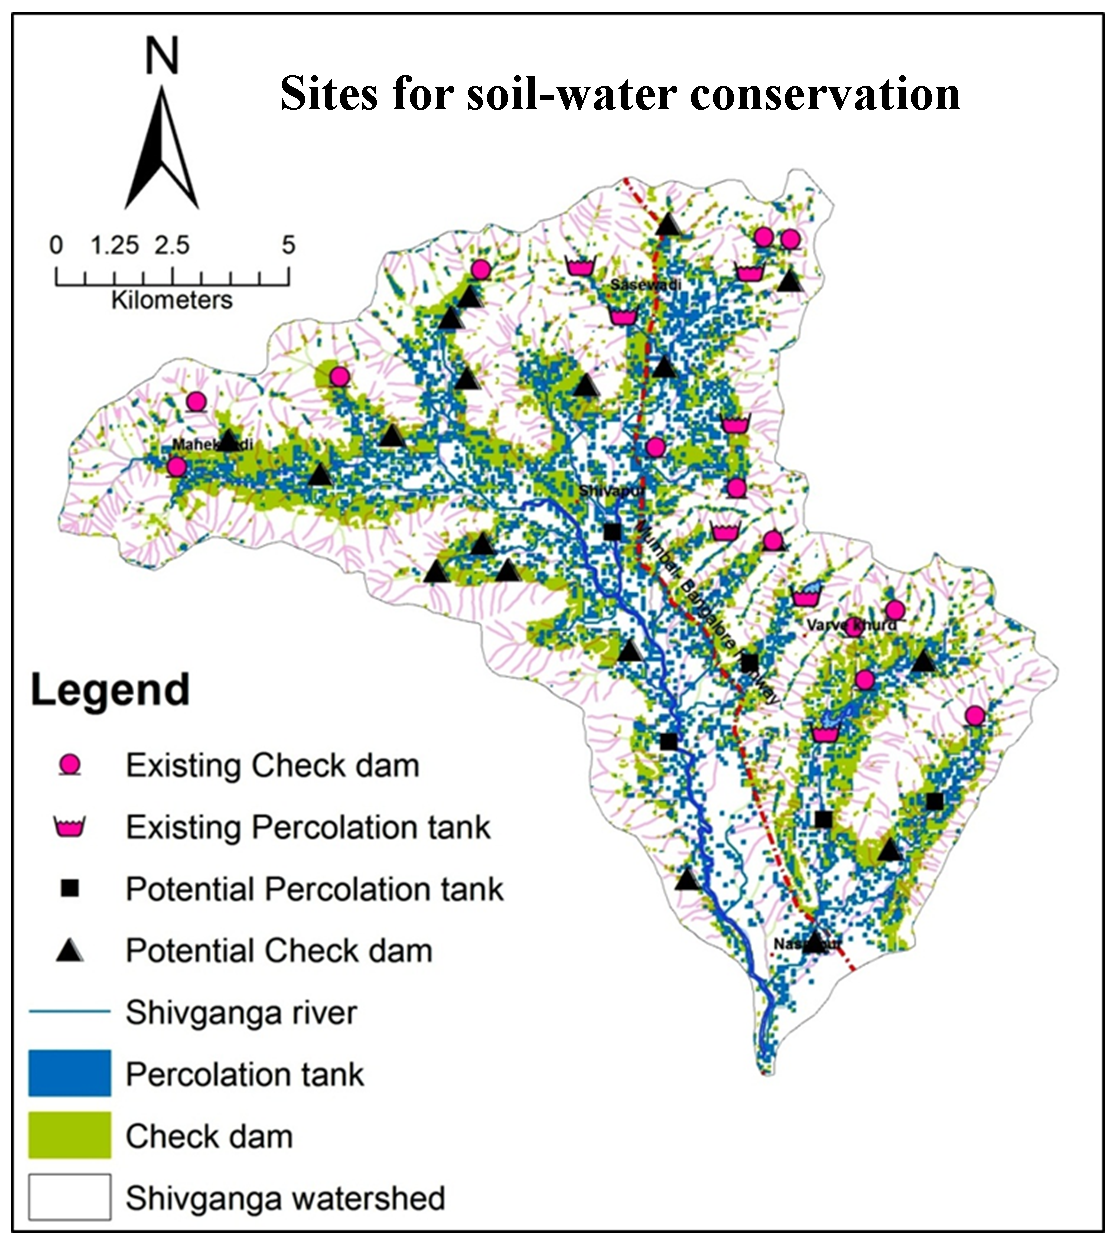 Identifying Possible Locations to Construct Soil-Water Conservation Structures by Using Hydro-geological and Geospatial Analysis